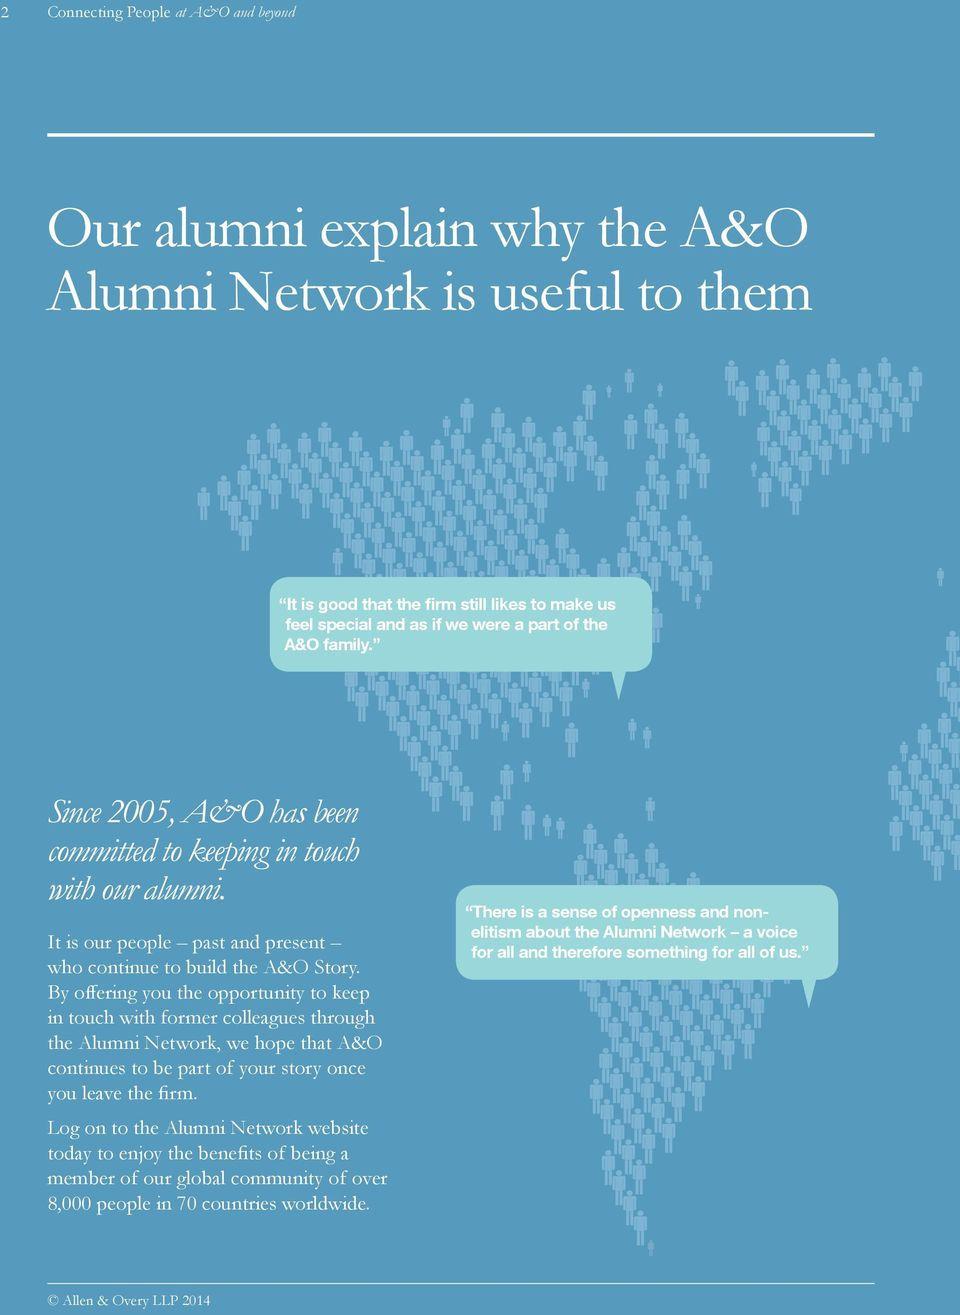 By offering you the opportunity to keep in touch with former colleagues through the Alumni Network, we hope that A&O continues to be part of your story once you leave the firm.